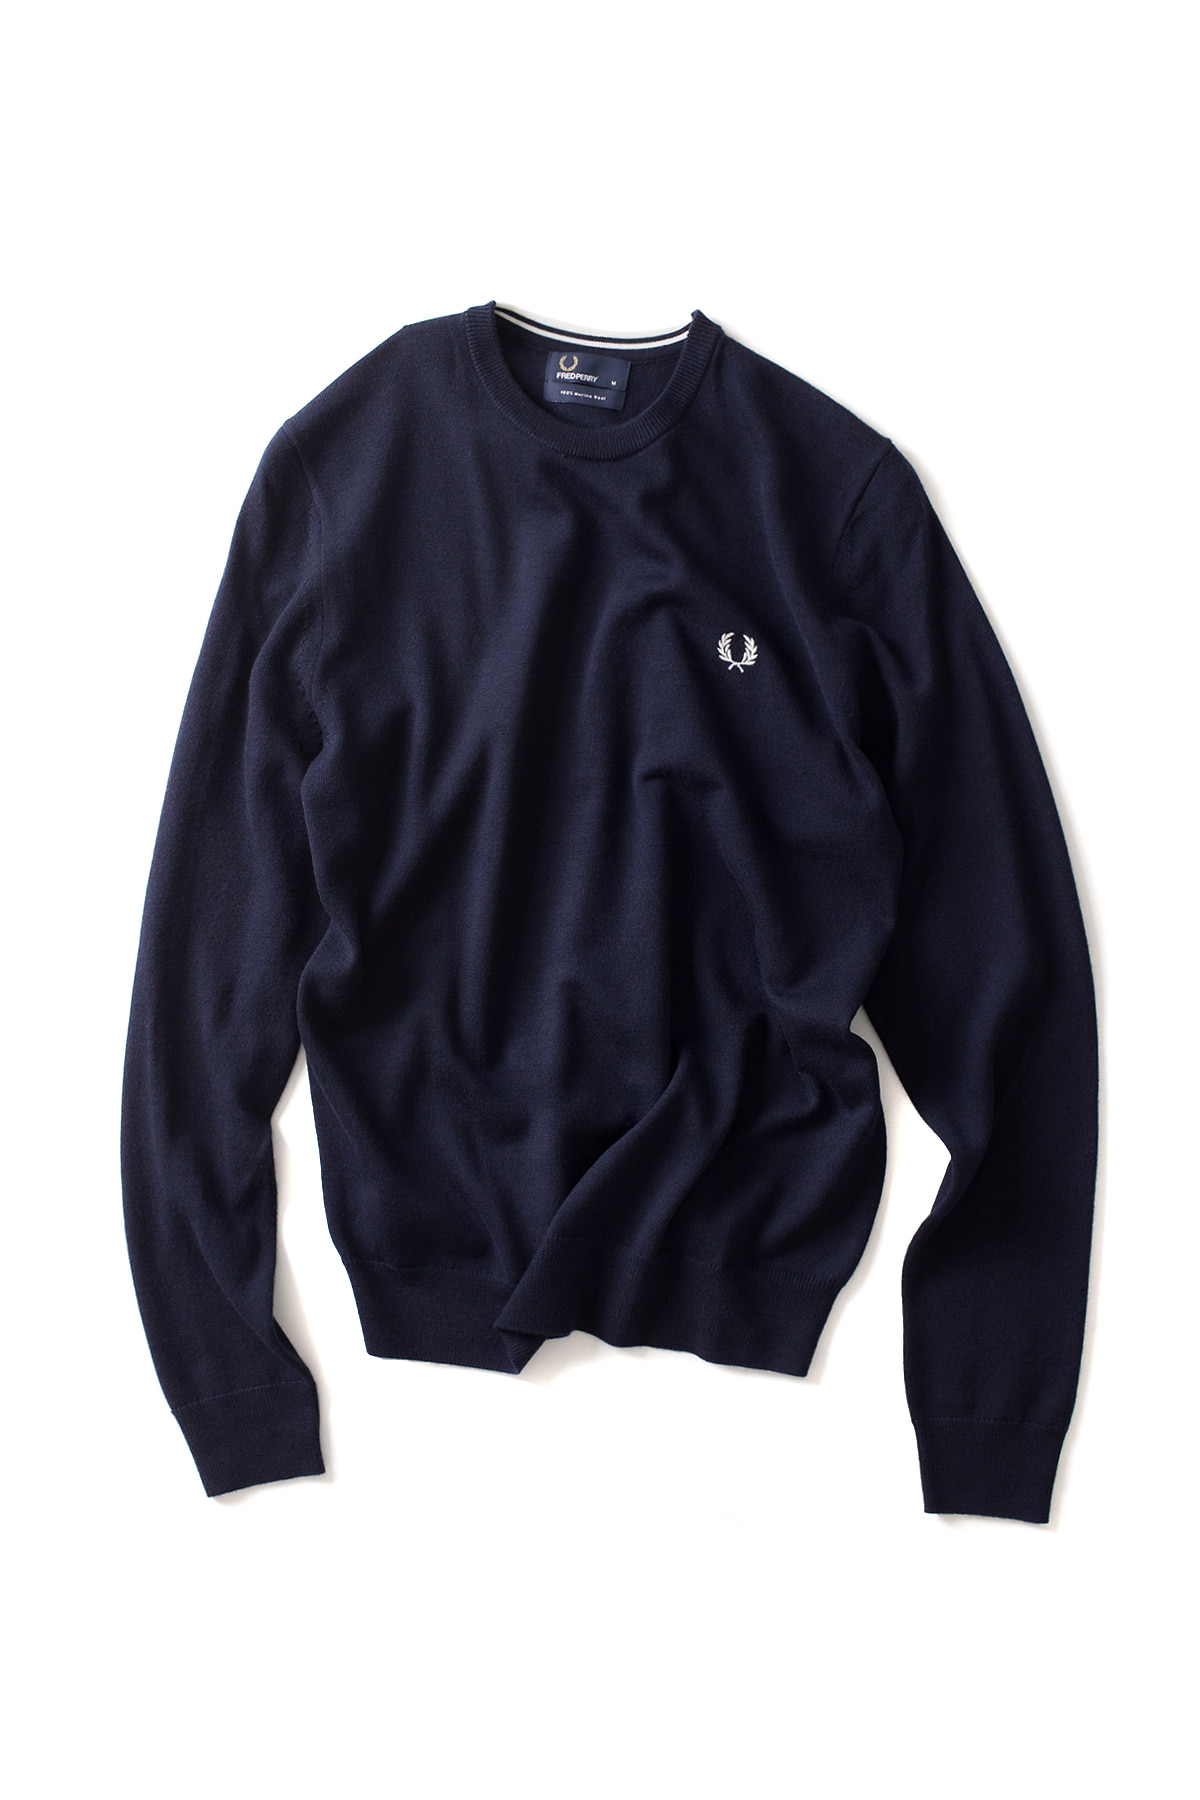 FRED PERRY : Classic Merino Crew Neck Sweater (Dark Carbon)